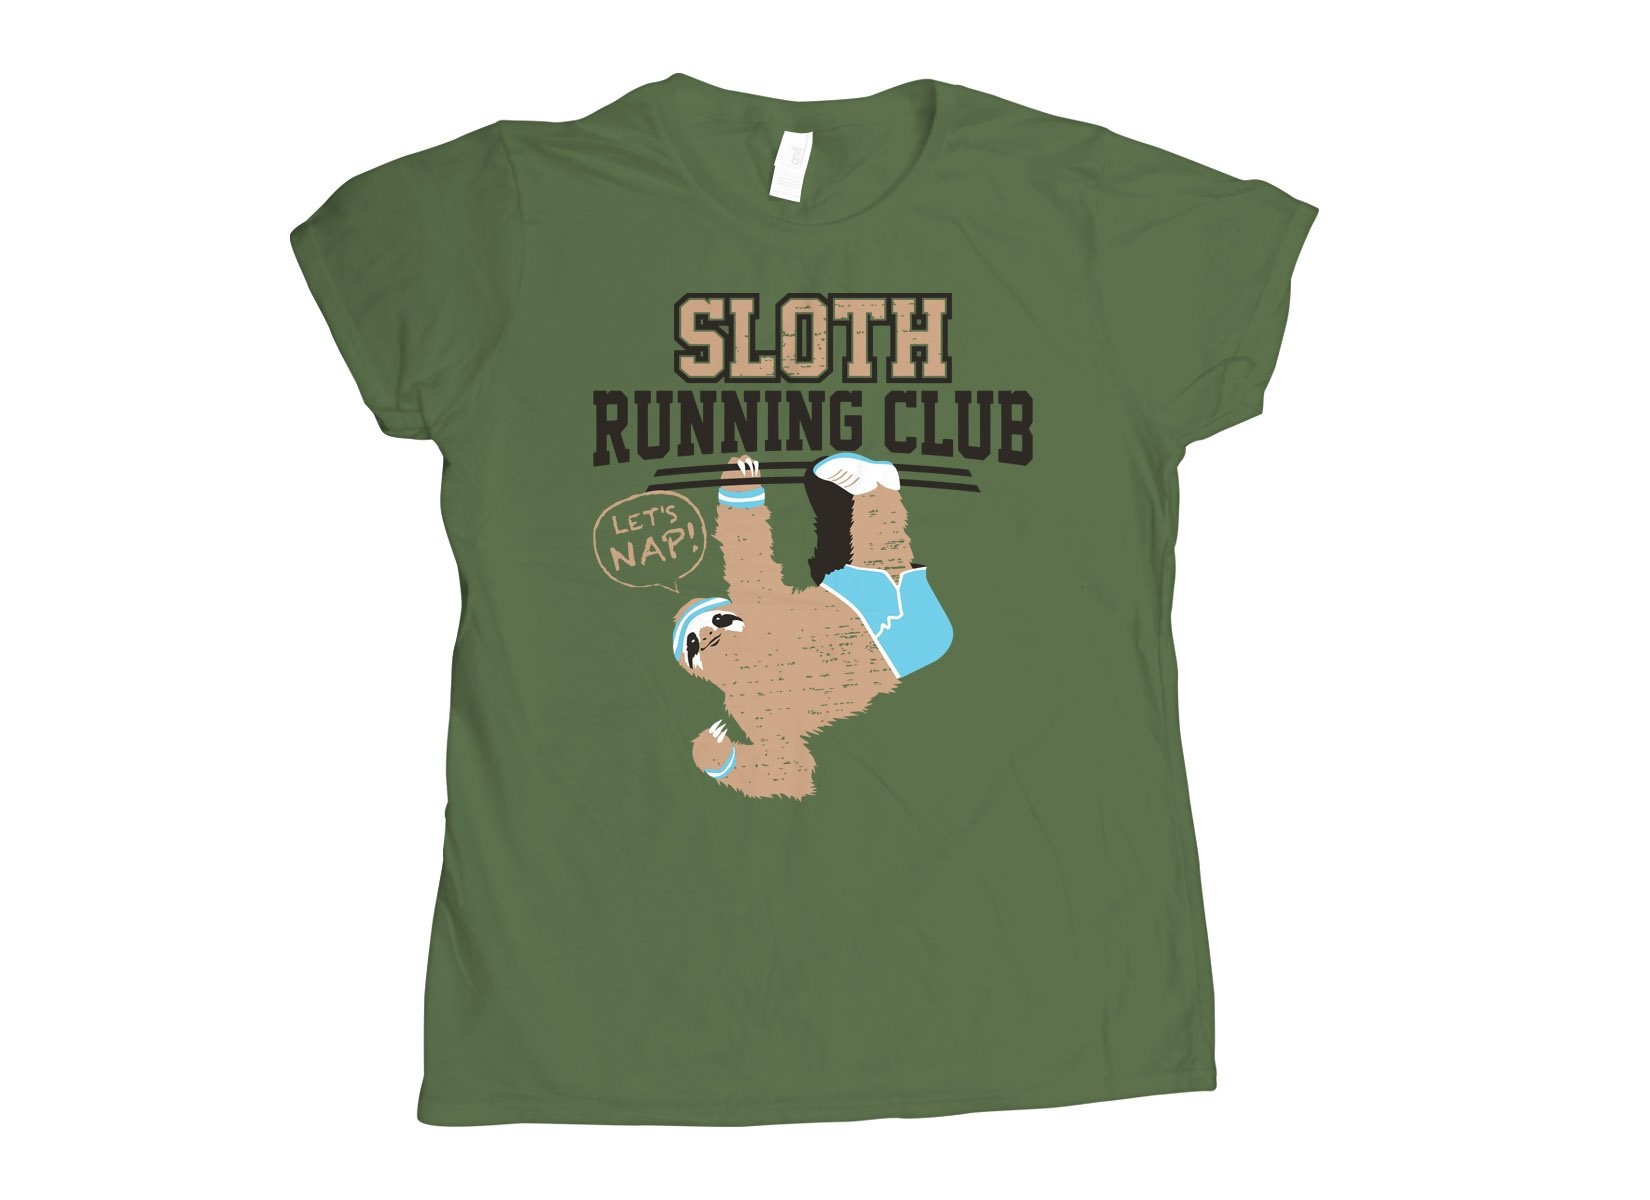 Sloth Running Club on Womens T-Shirt